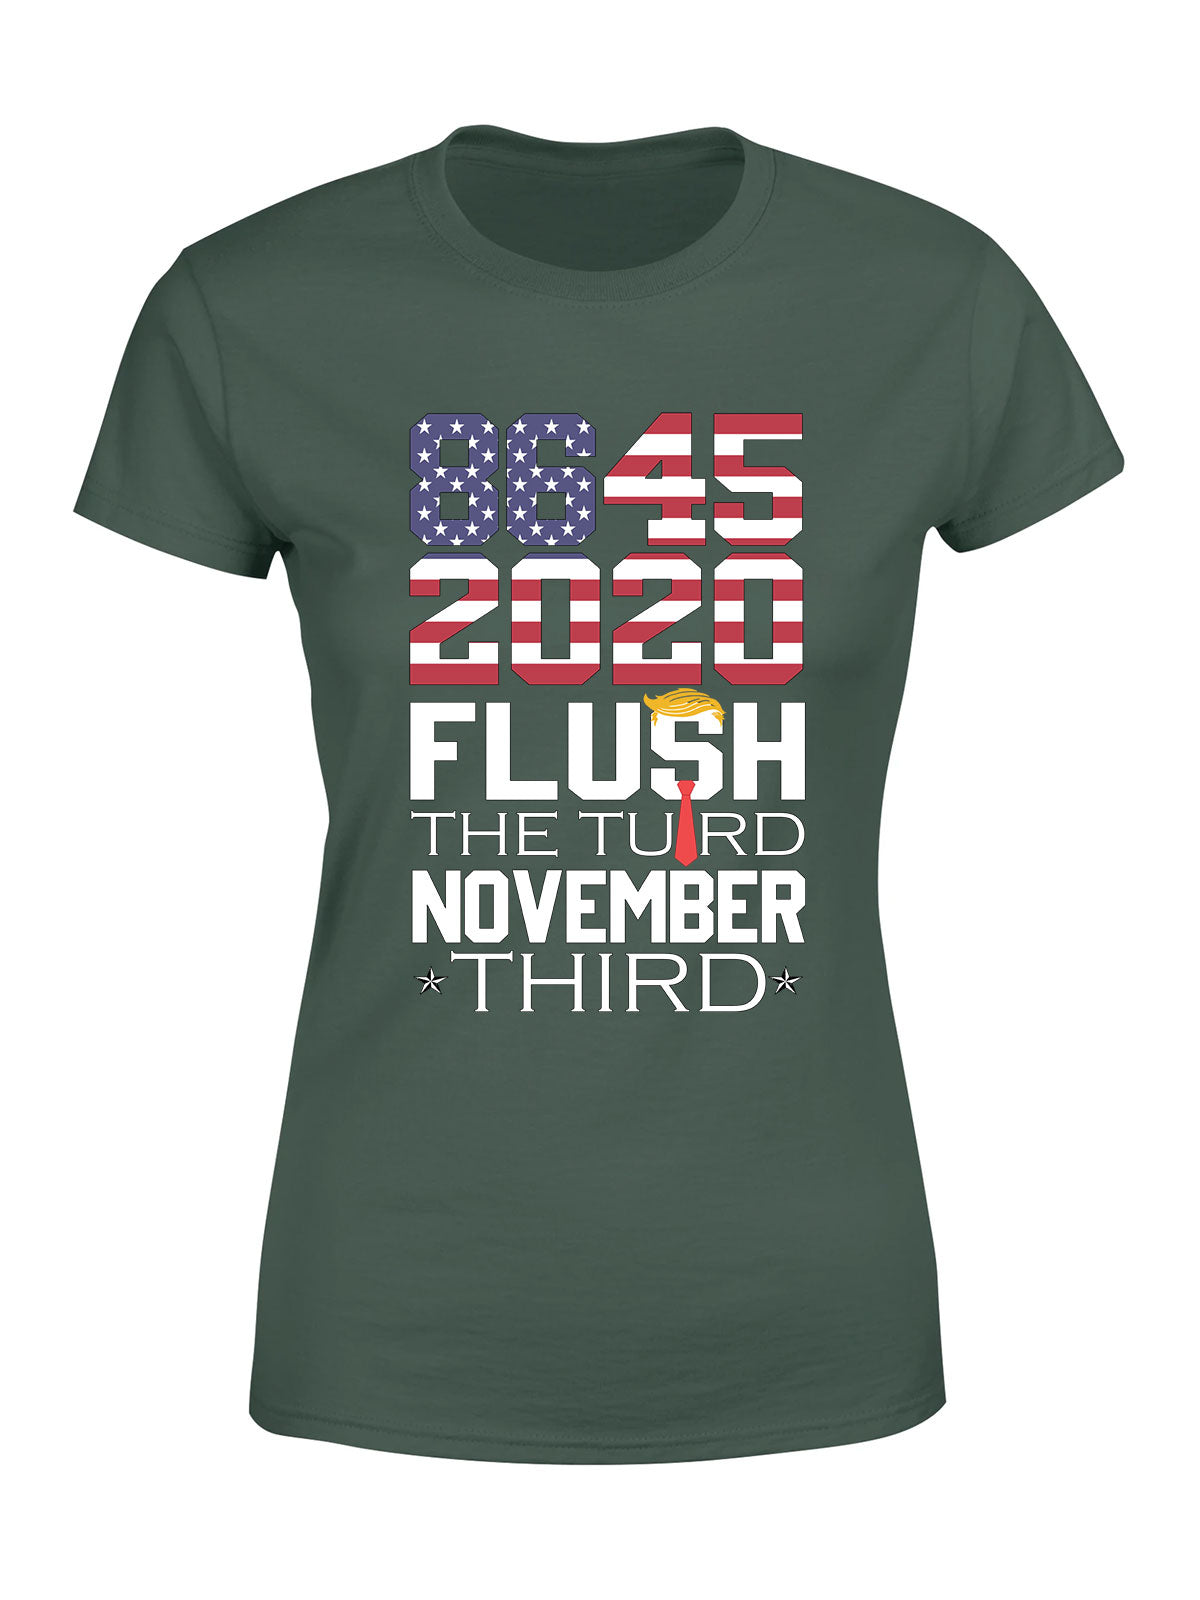 8645 - Classic Women T-shirt - Anti Trump Shirt, Anti-Trump POTUS Vote Shirt, Flush The Turd November 3rd Shirt